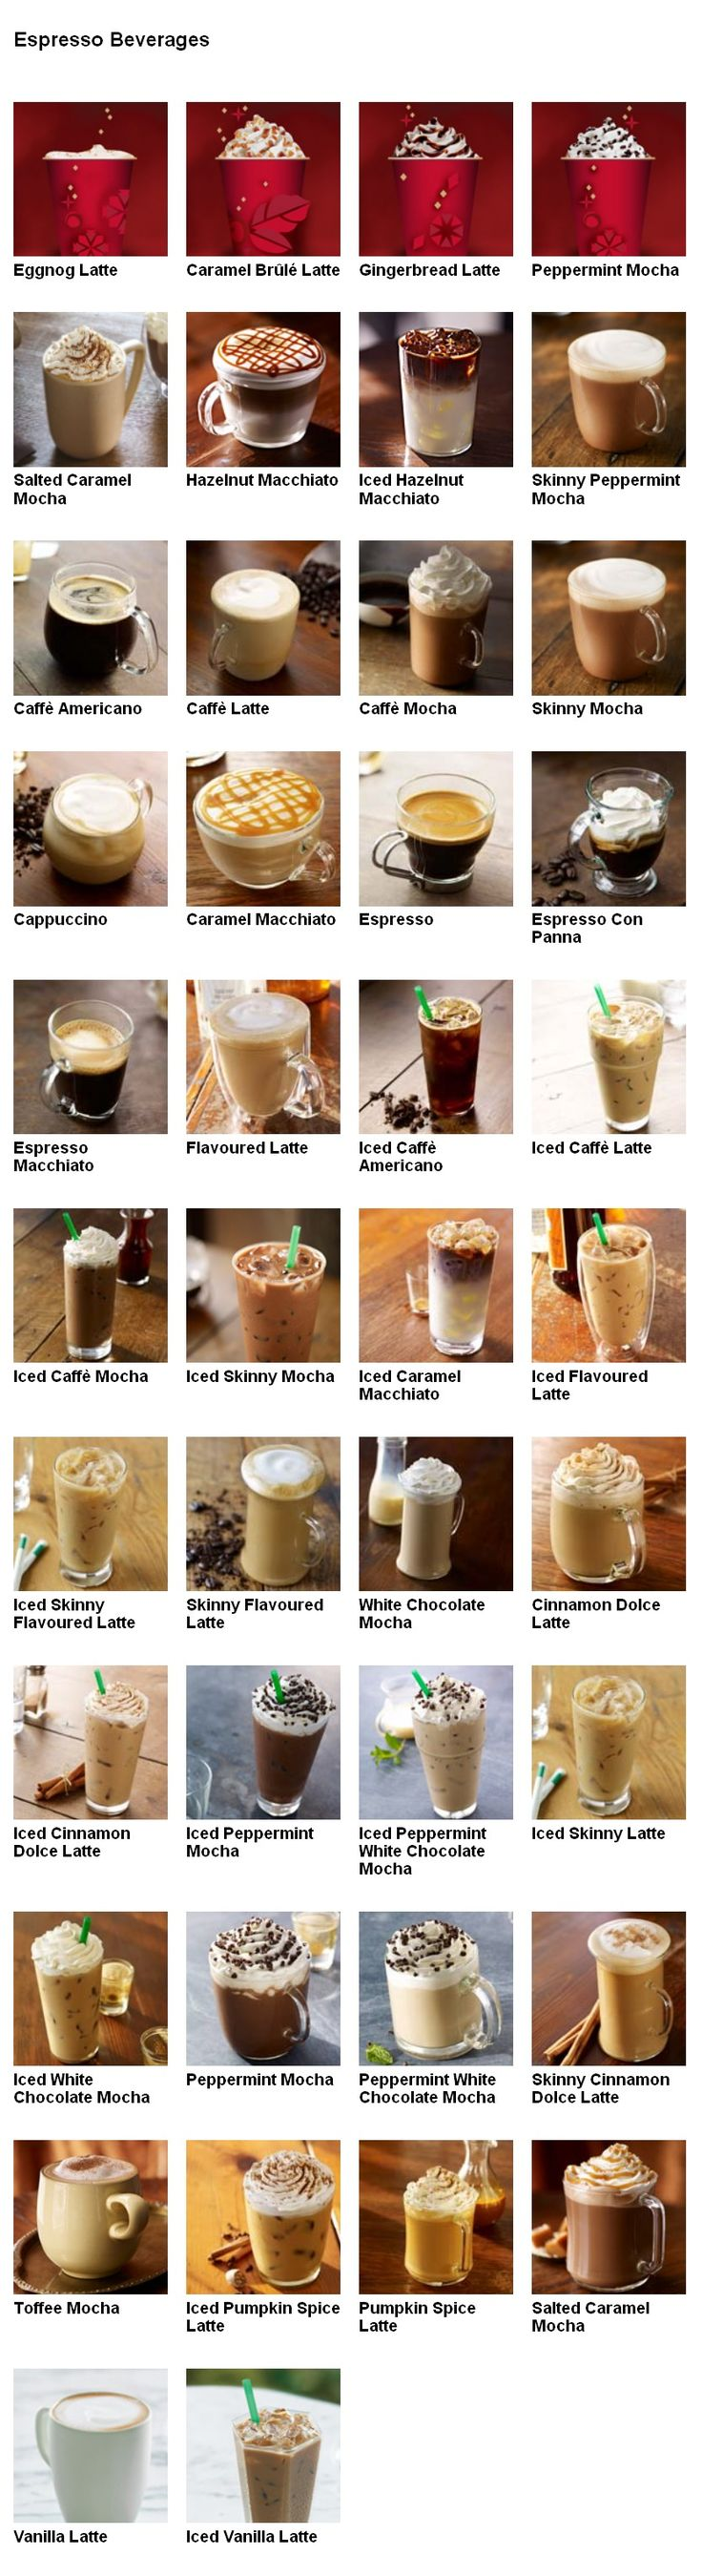 Starbucks - Drinks                                                                                                                                                                                 More